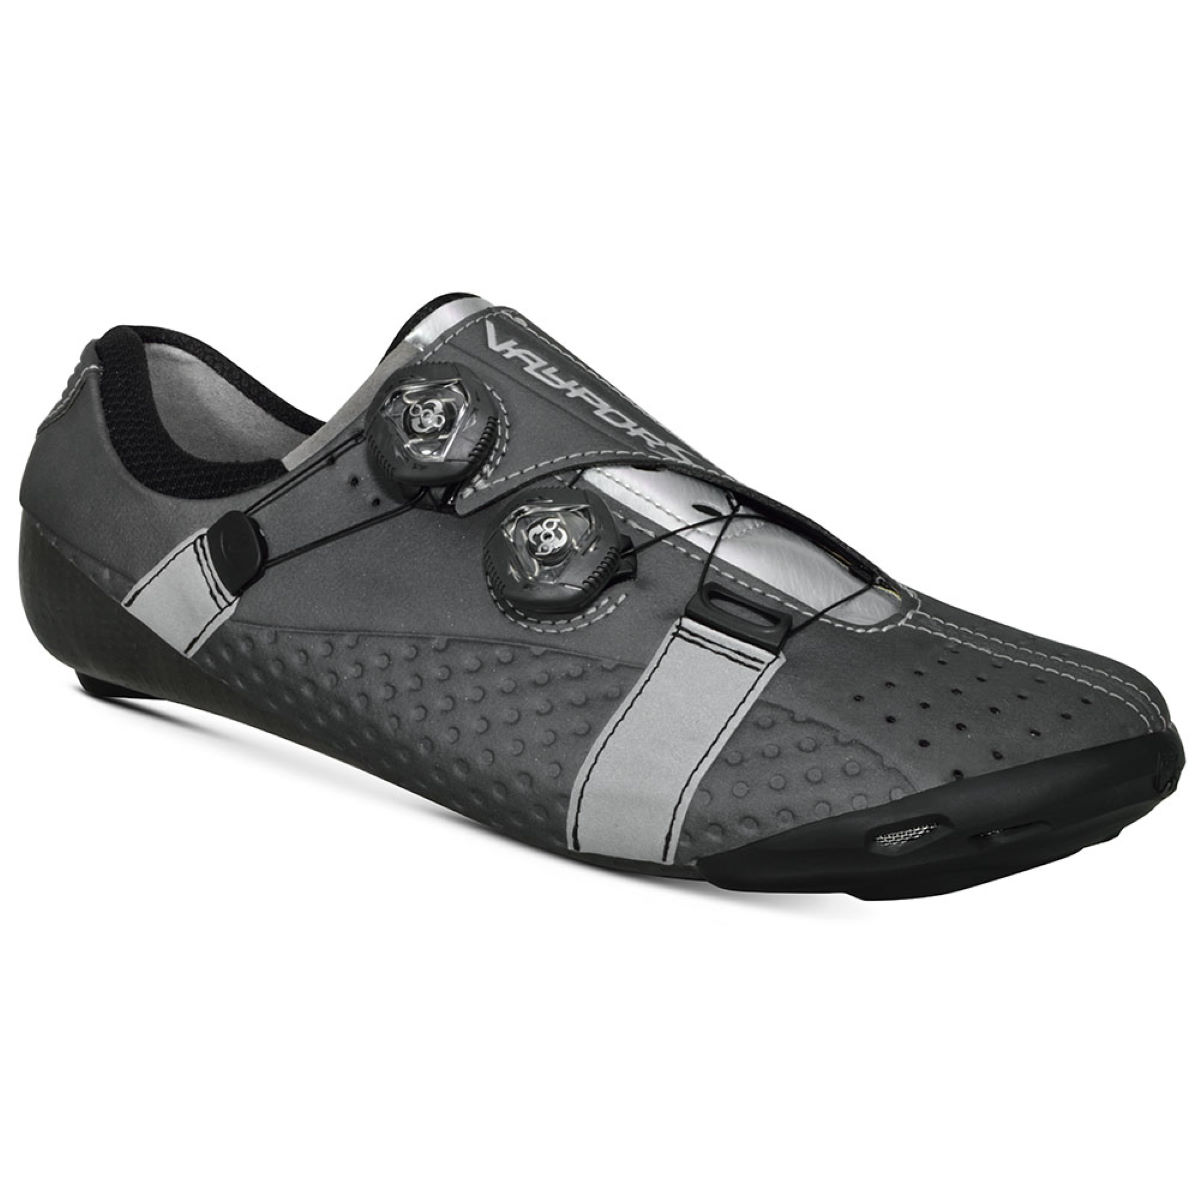 Mavic Cosmic Elite Shoe Cover   Overshoes